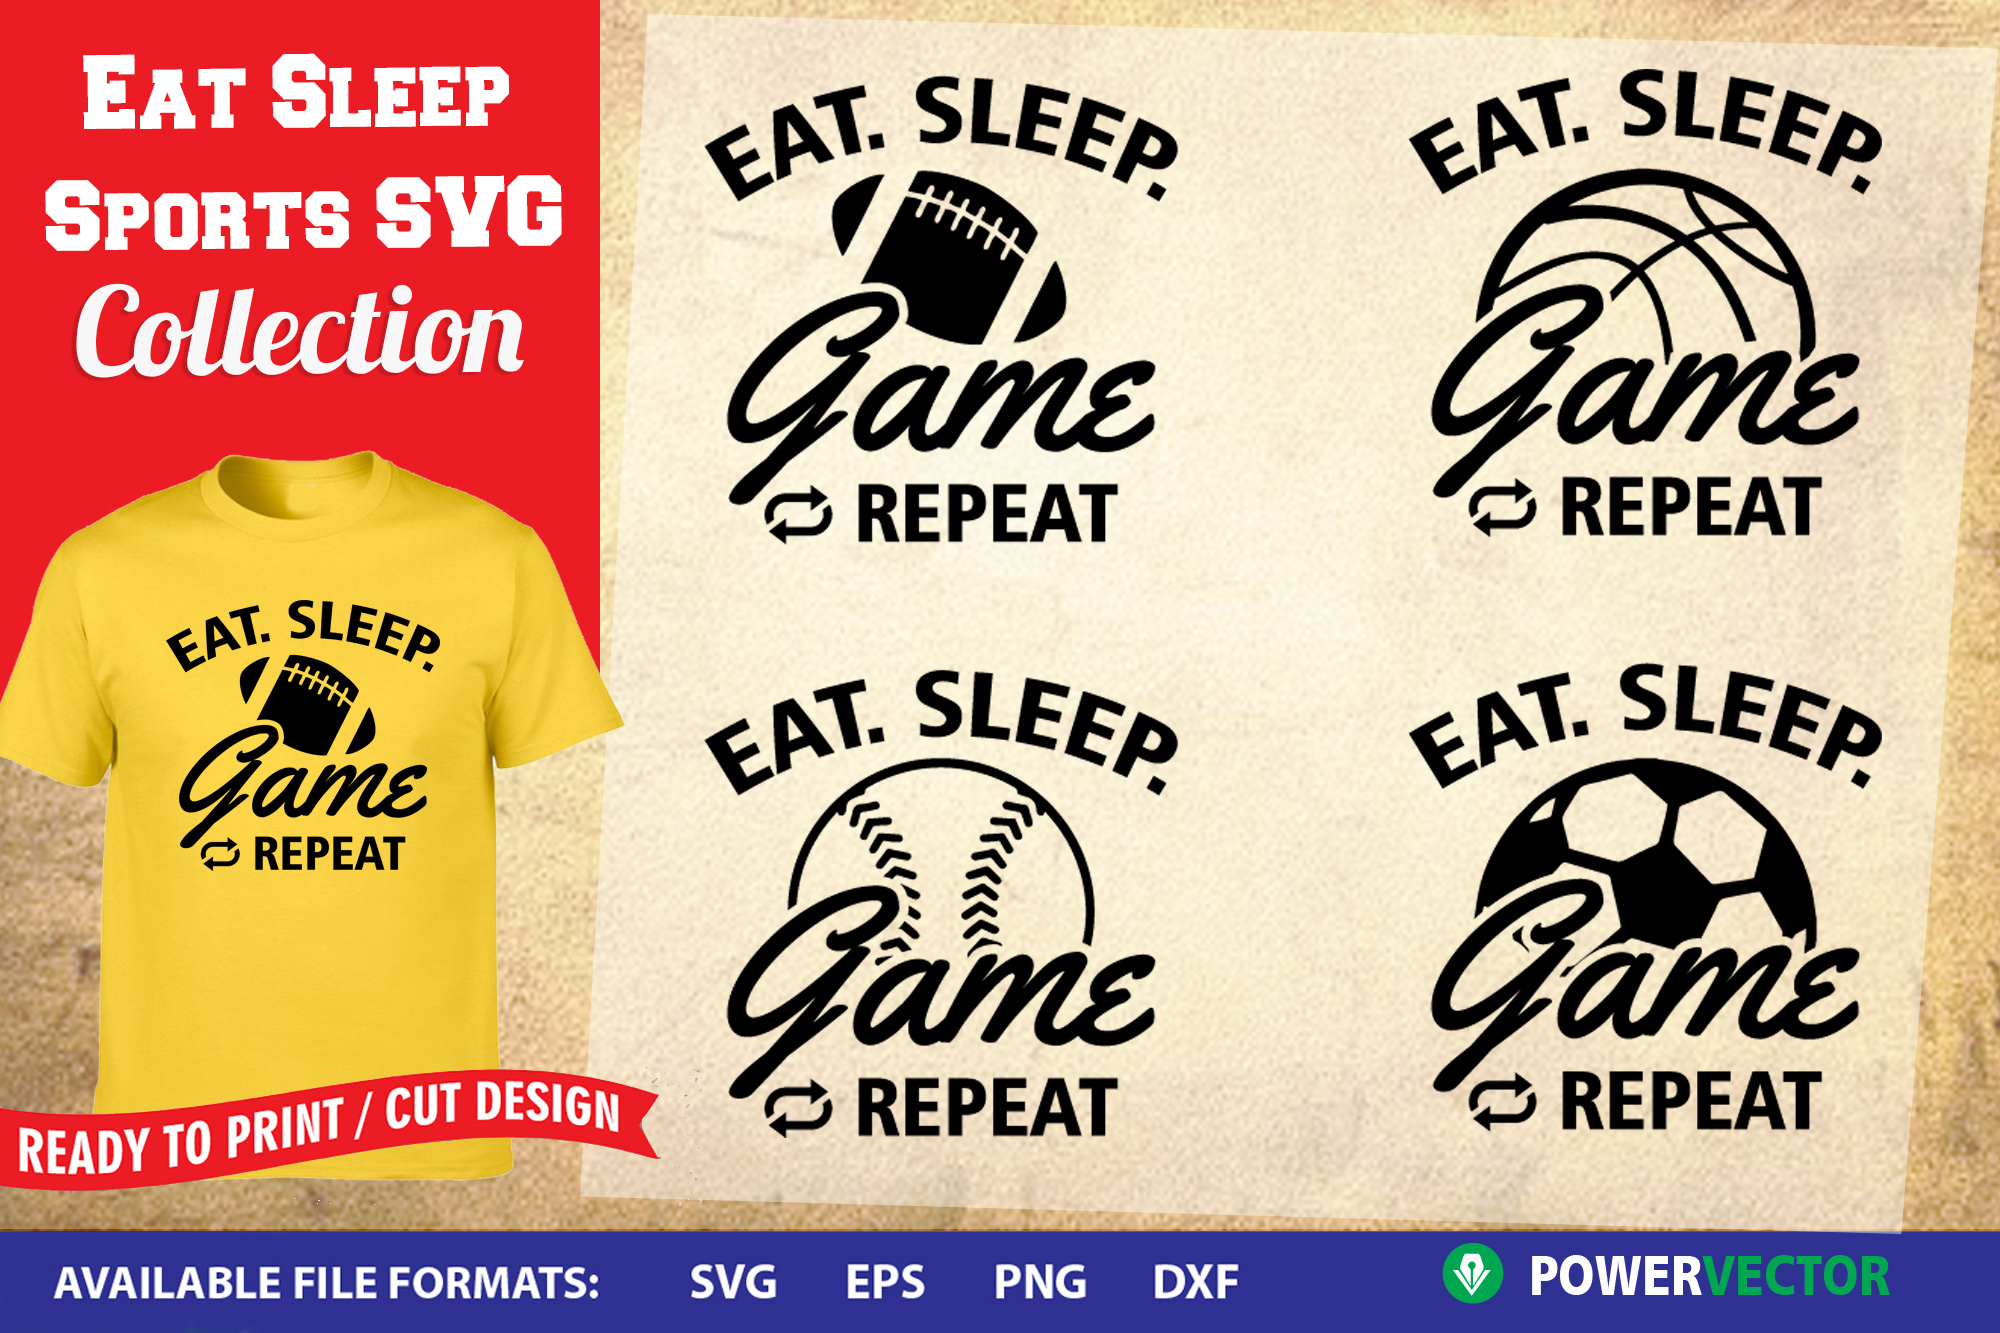 Eat Sleep Game SVG Collection | Sports T shirt Designs example image 1